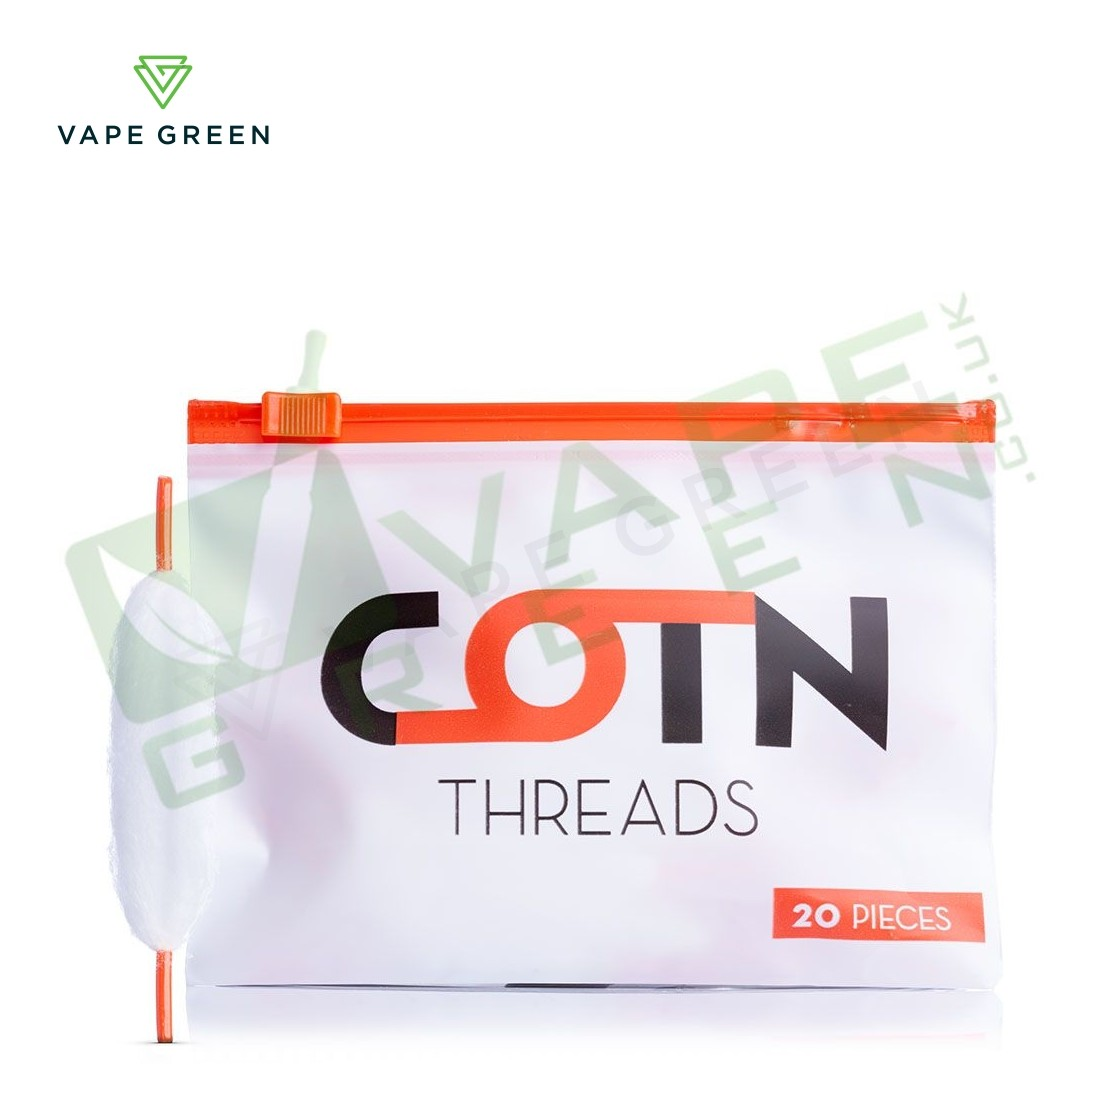 Cotton Threads by Cotn